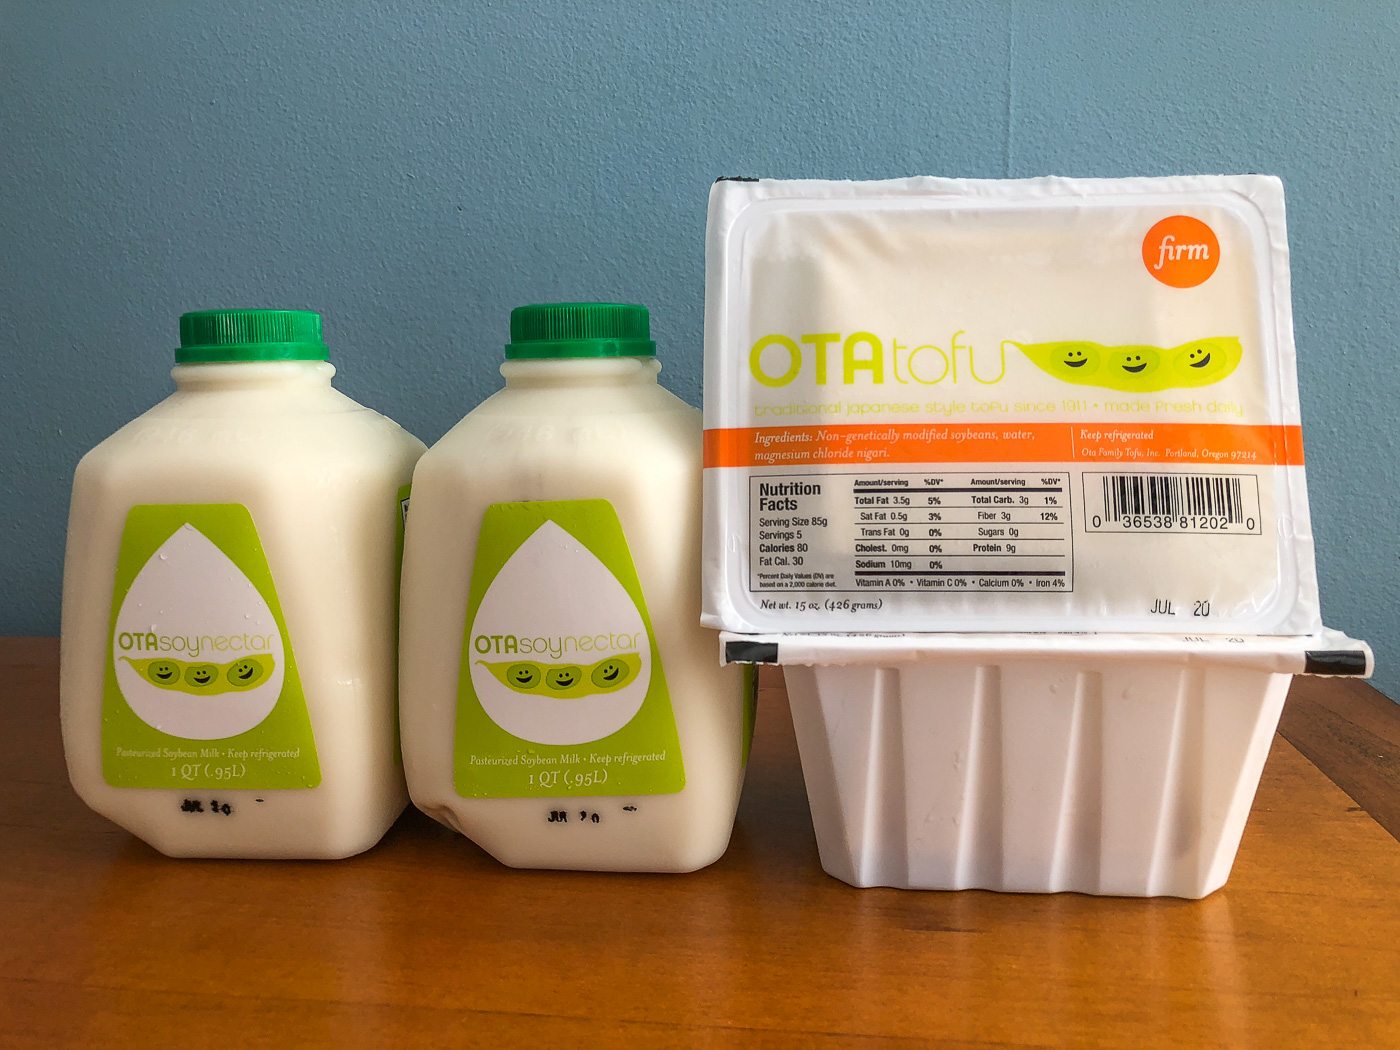 Two cartons of soymilk and two packages of tofu